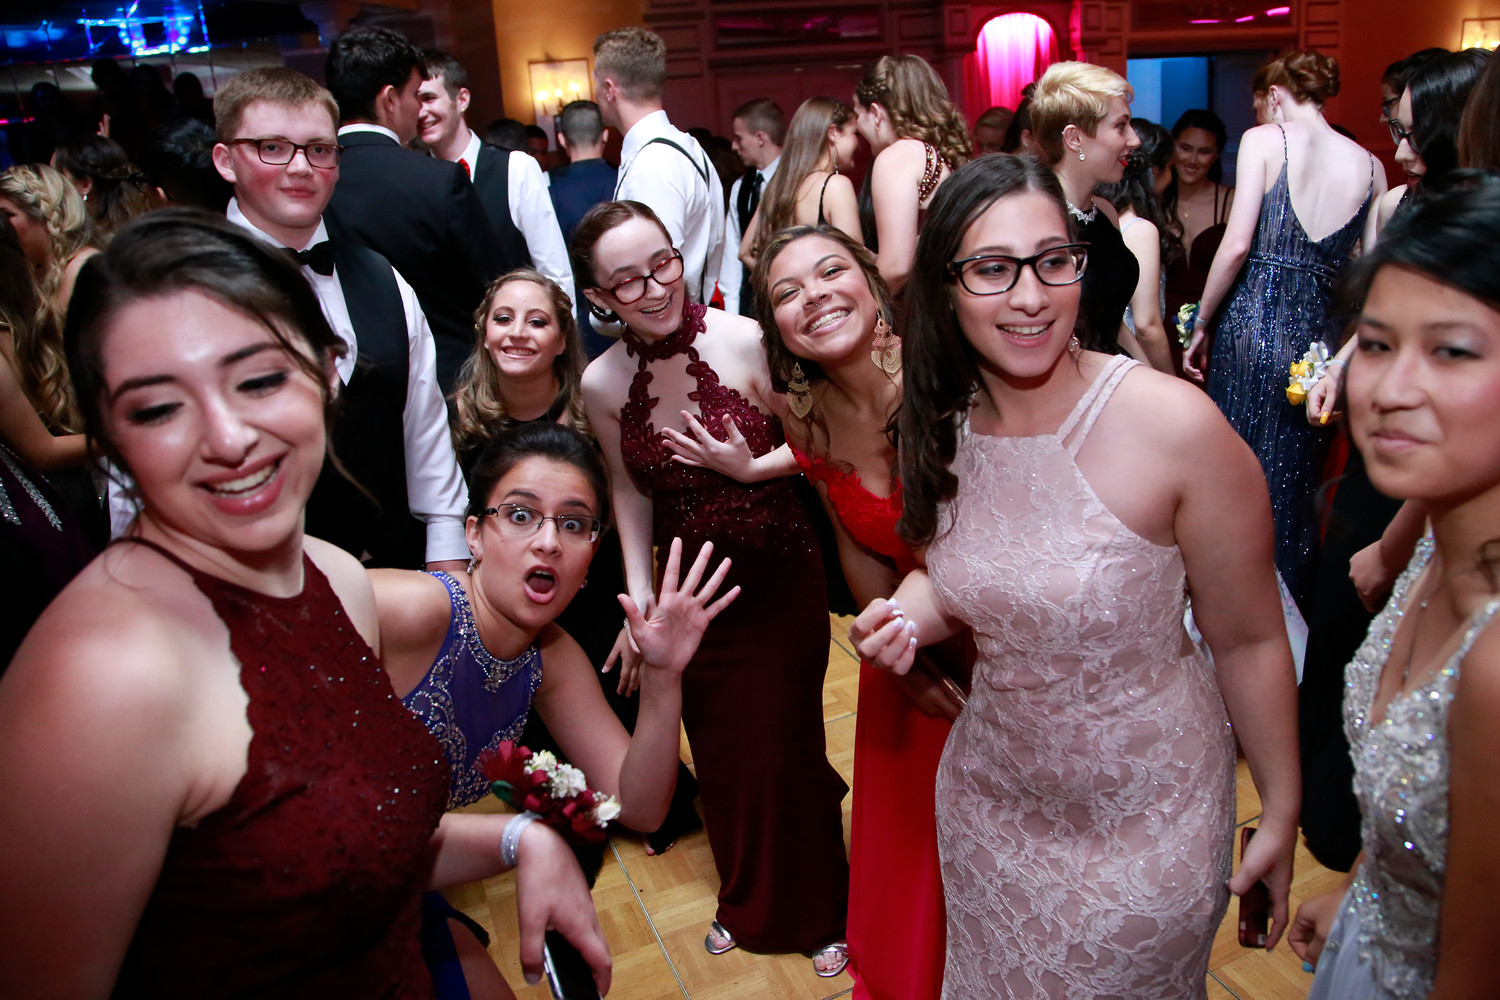 Excited promgoers mugged for the camera.